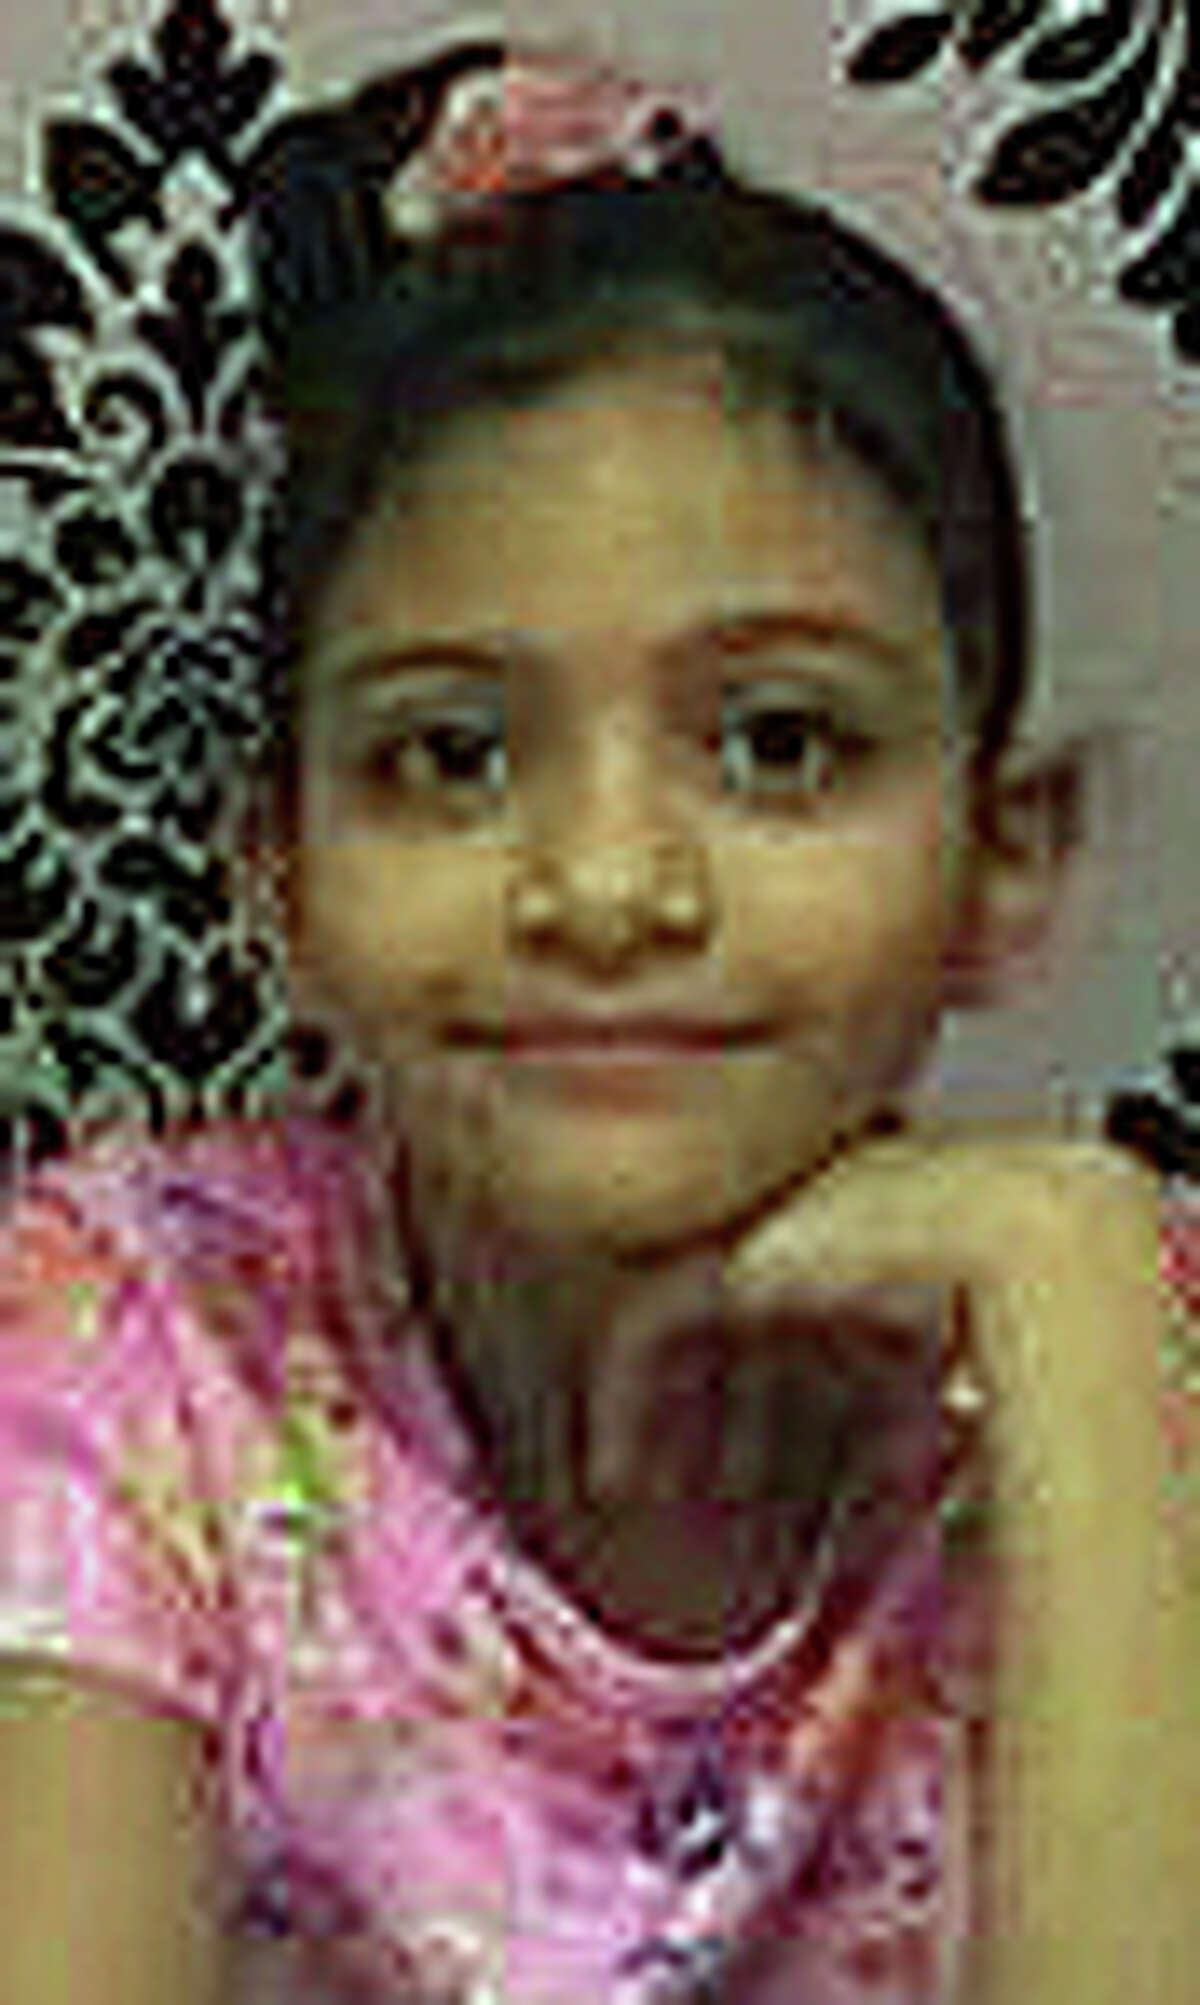 Angelina Rodriguez, 9, was killed on June 1, 2016 in a traffic accident on I-84 in New York state. Also killed in the crash was her mother, Jesenia Valentin, a 28-year-old actress and Bridgeport resident and Valentin's 12-year-old niece, Asyria Ferrer. Funeral services for all three will be held on Thursday, June 9, 2016 at Cathedral of Praise Church of God in Christ 45 Gregory St.in Bridgeport.